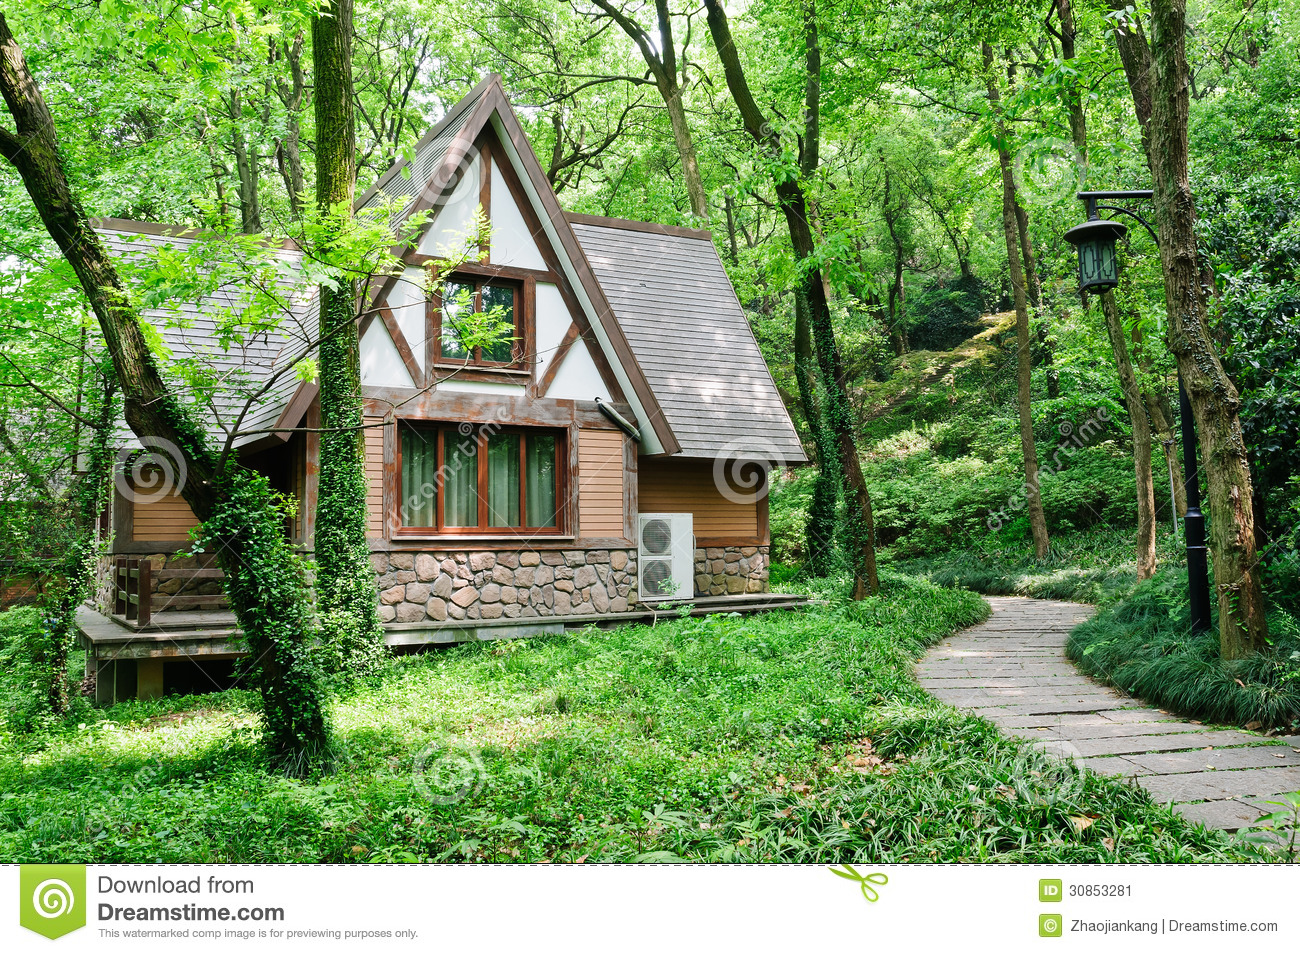 Little house in the woods stock image image of nature for Building a small cabin in the woods